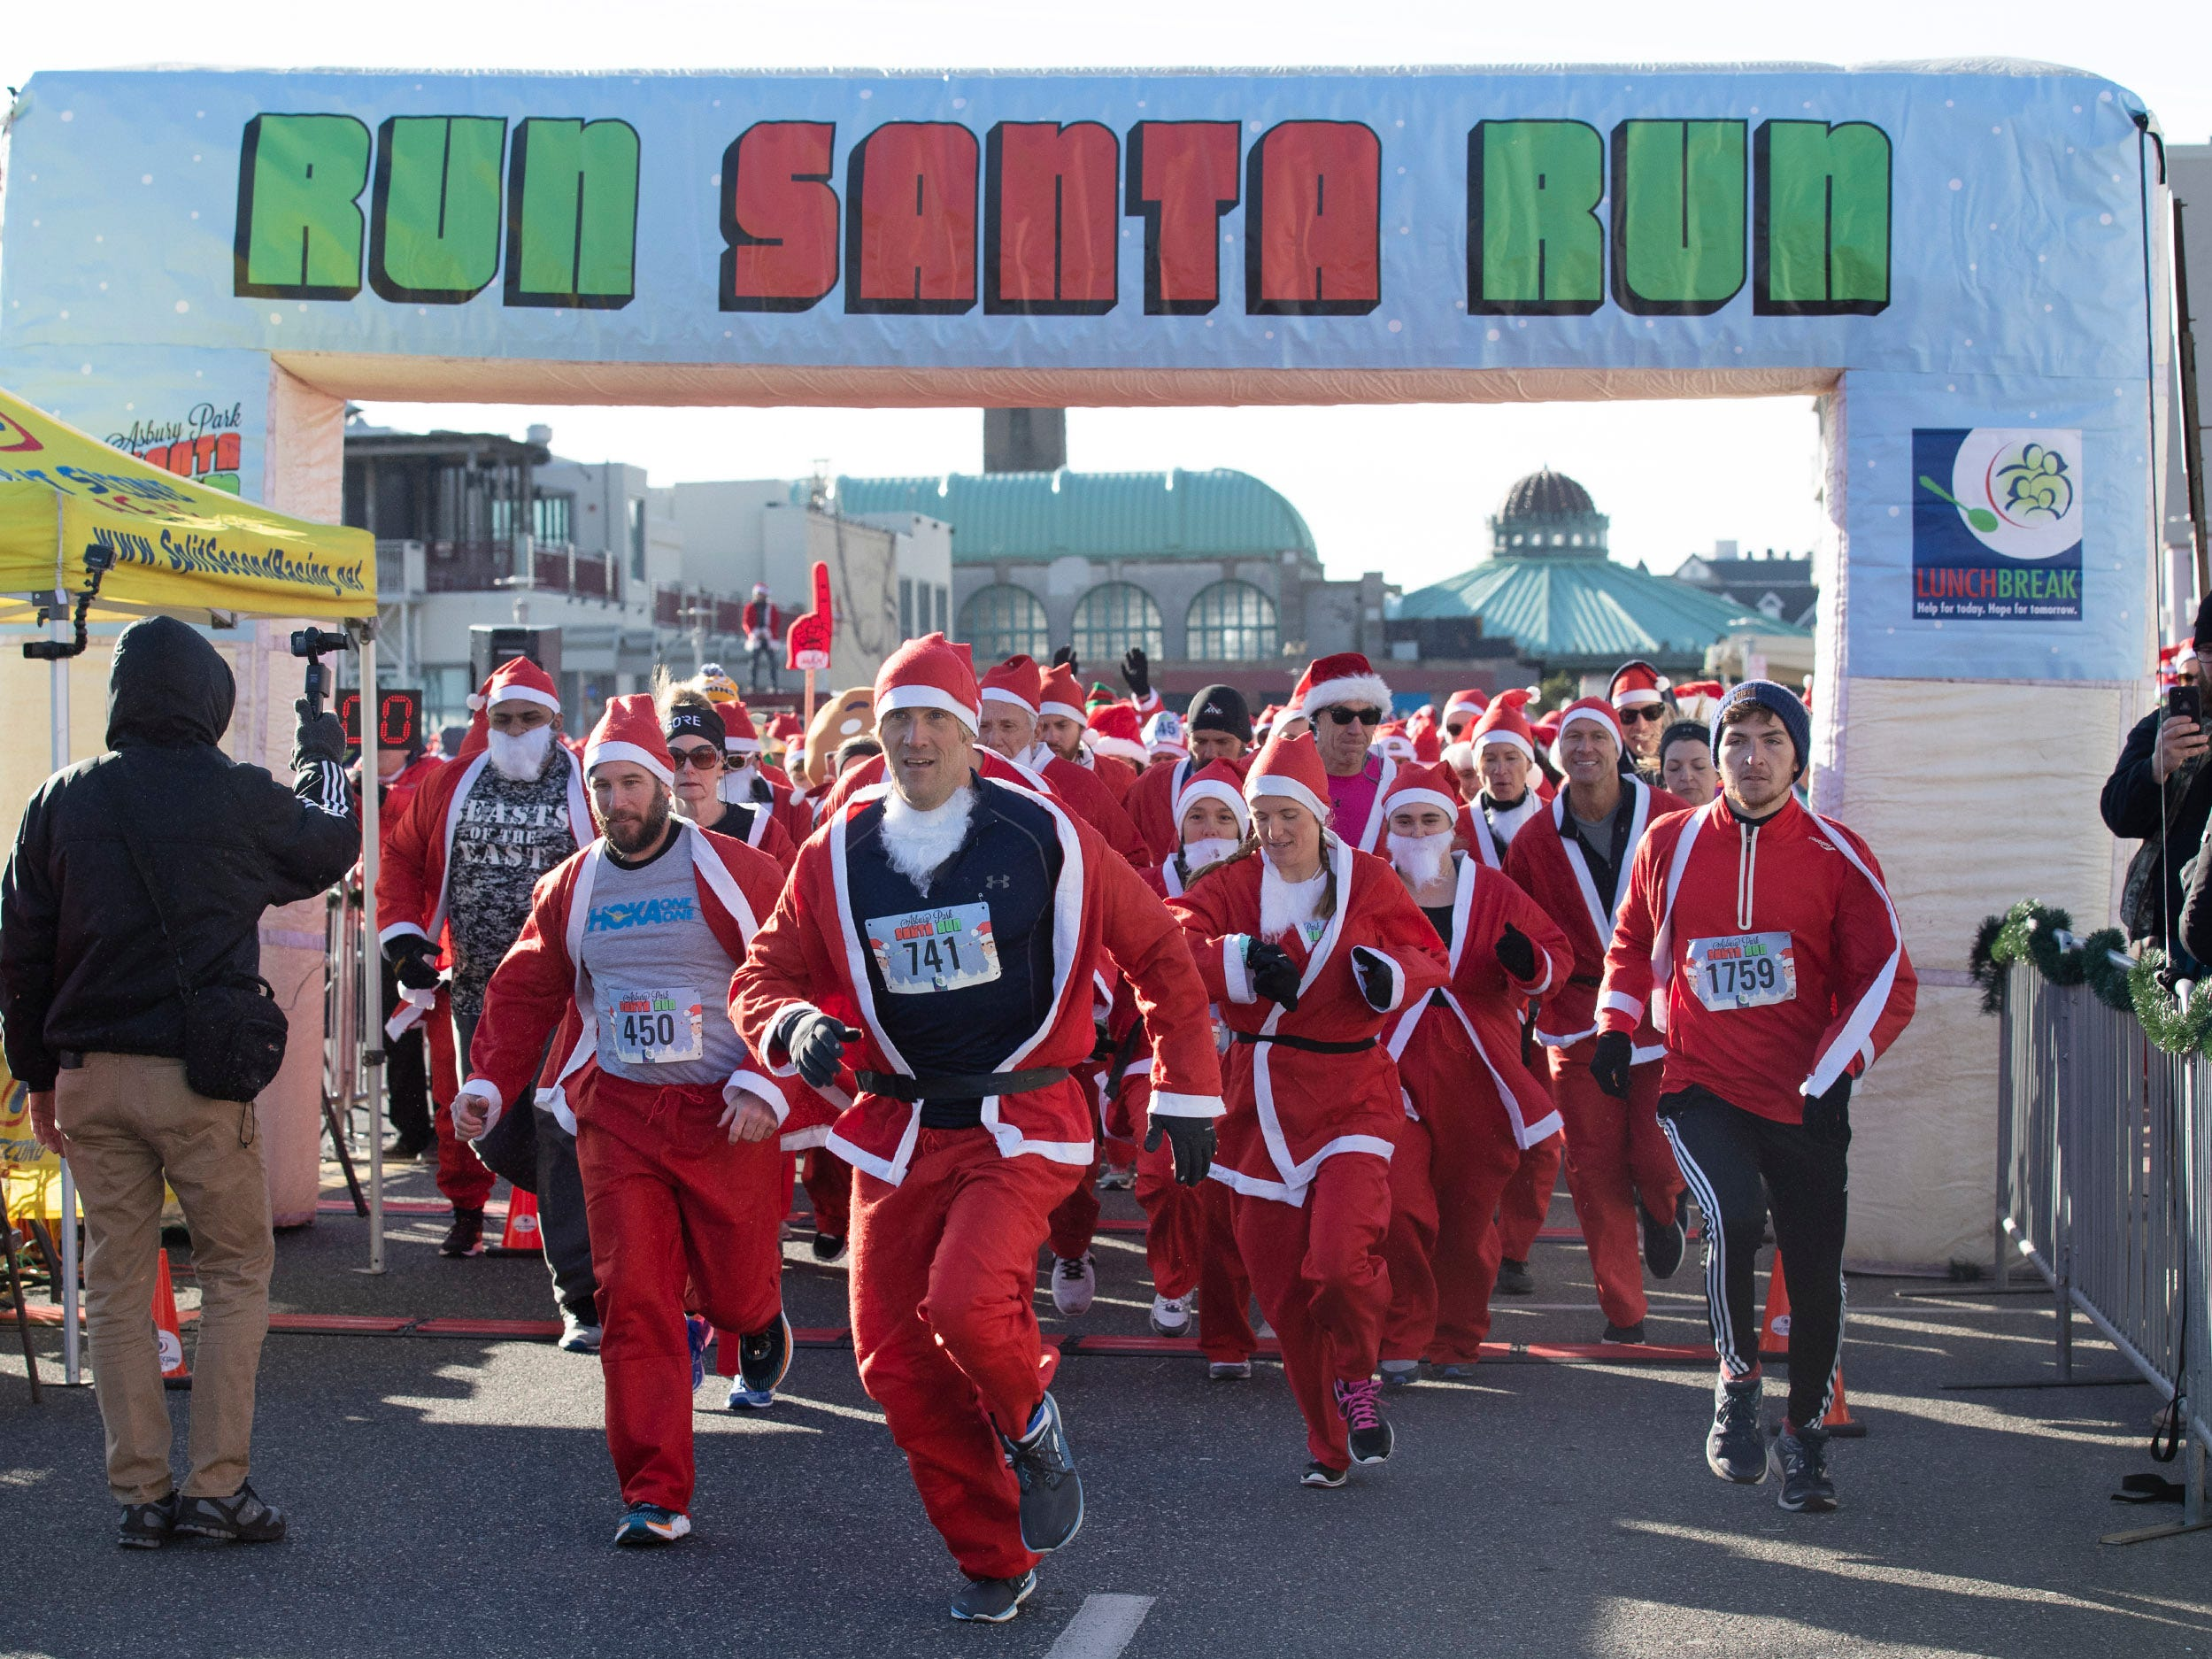 Runners head out on the 2018 Santa Run. Runners brave the cold to participate in the annual Santa Run 5K in Asbury Park on December 8, 2018.